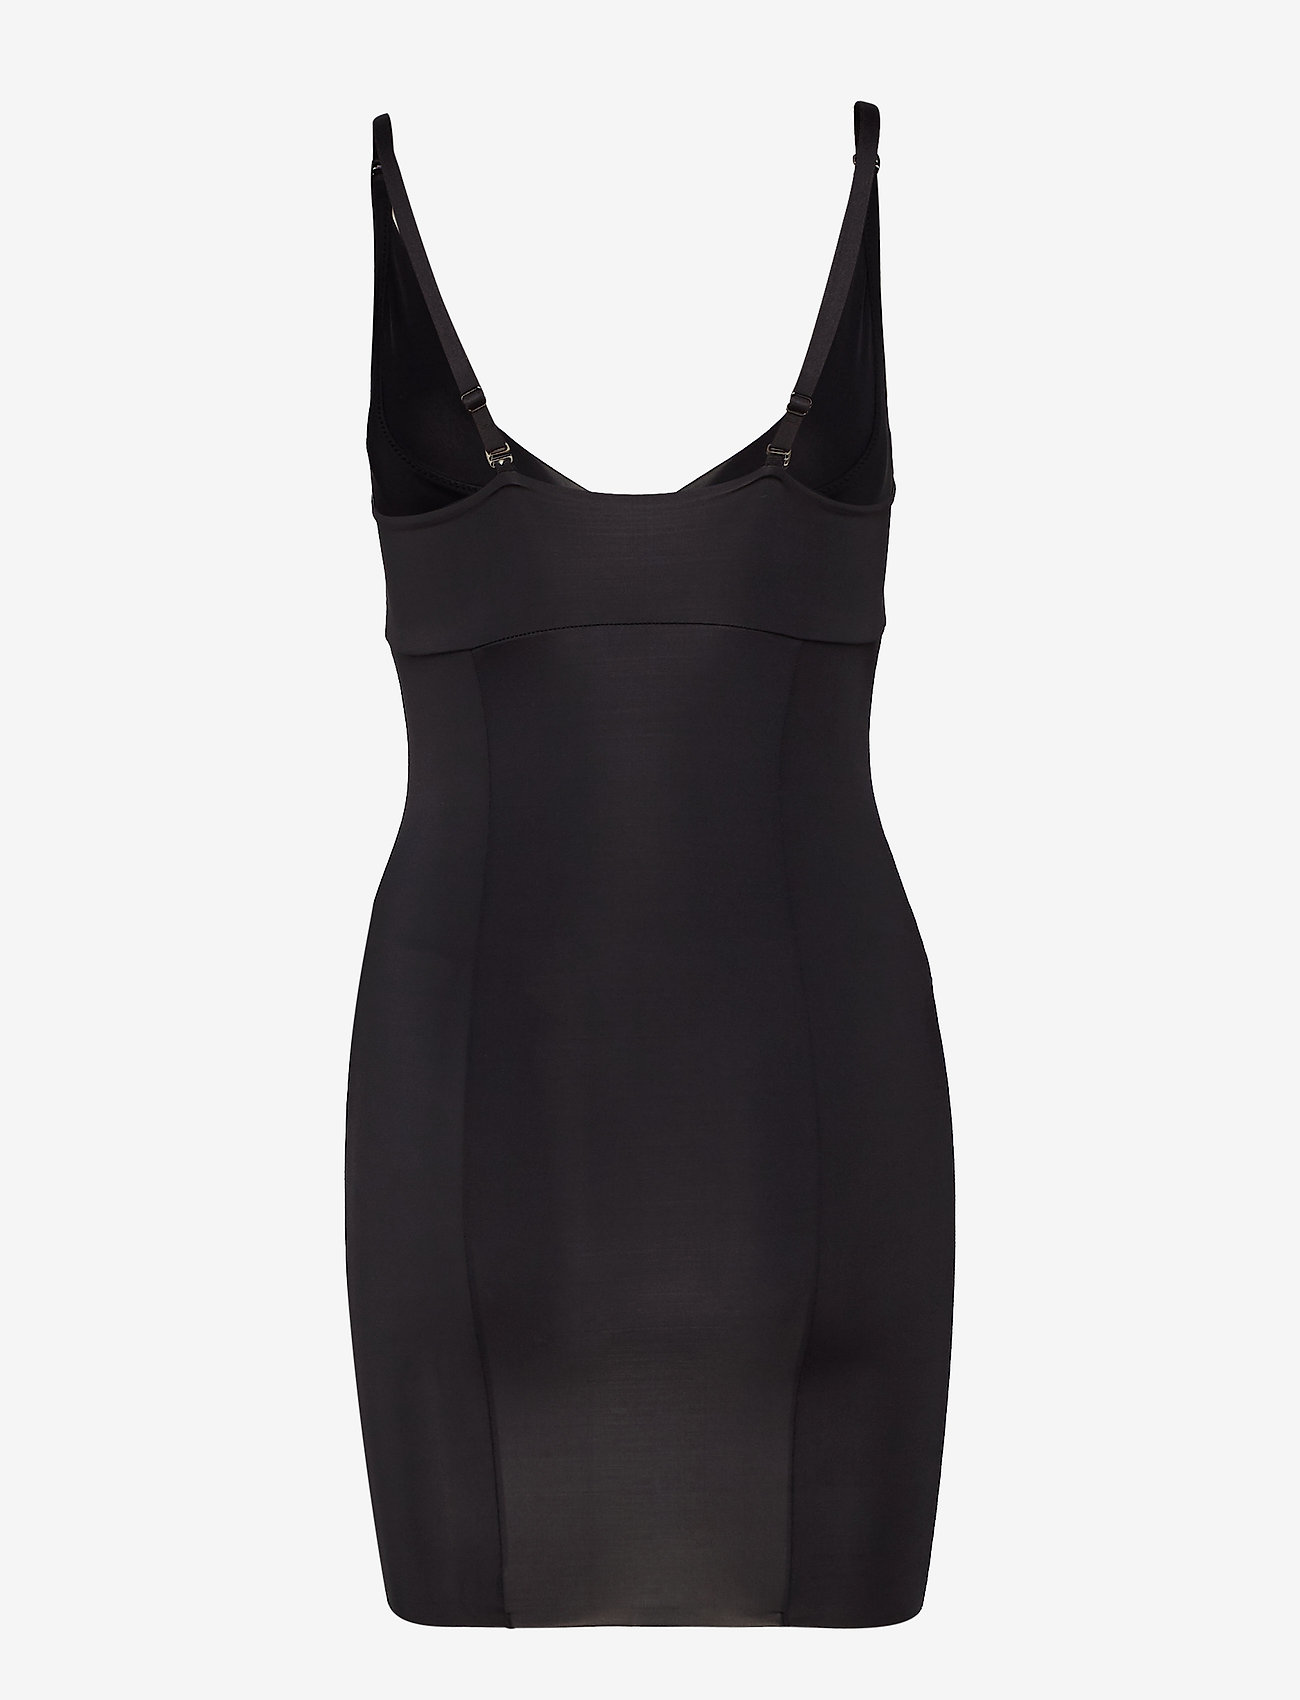 Decoy - DECOY dress shapewear - tops - black